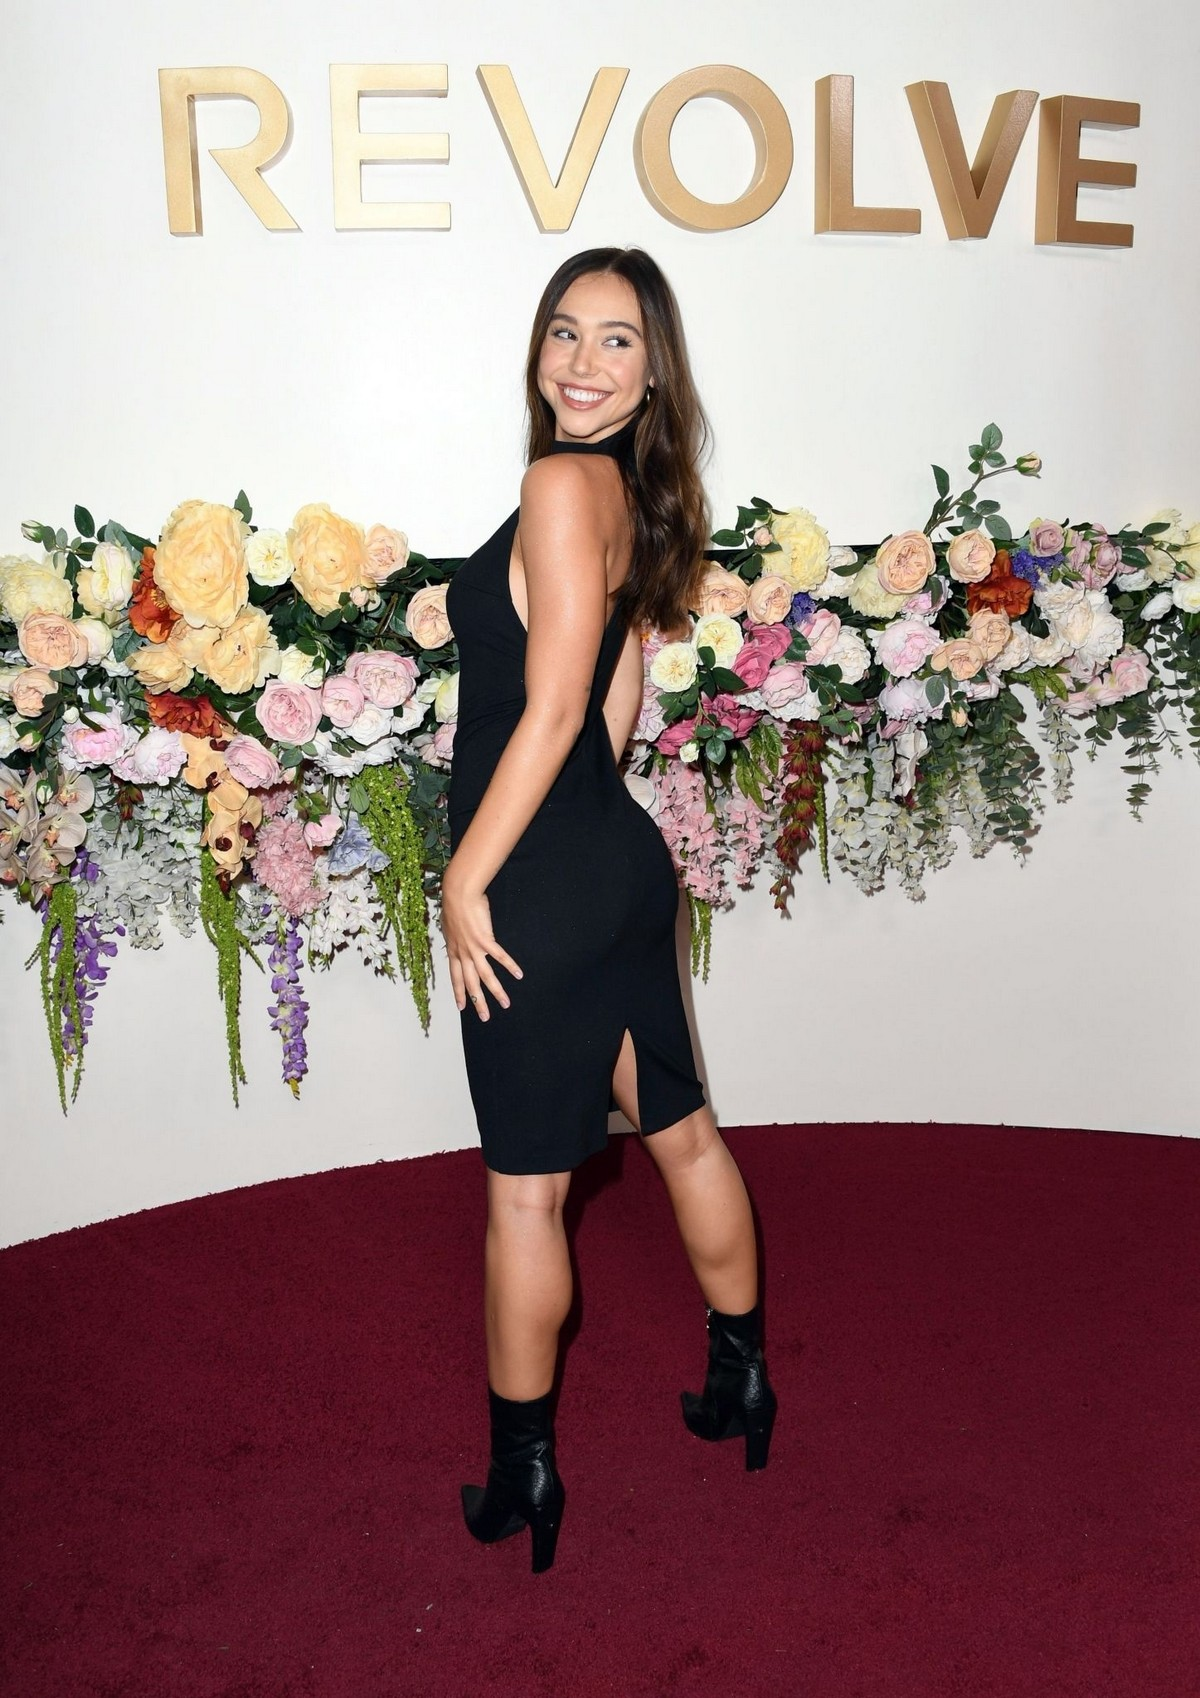 Alexis Ren in Black Dress at 3rd Annual #Revolve Awards in Hollywood 2019/11/15 1